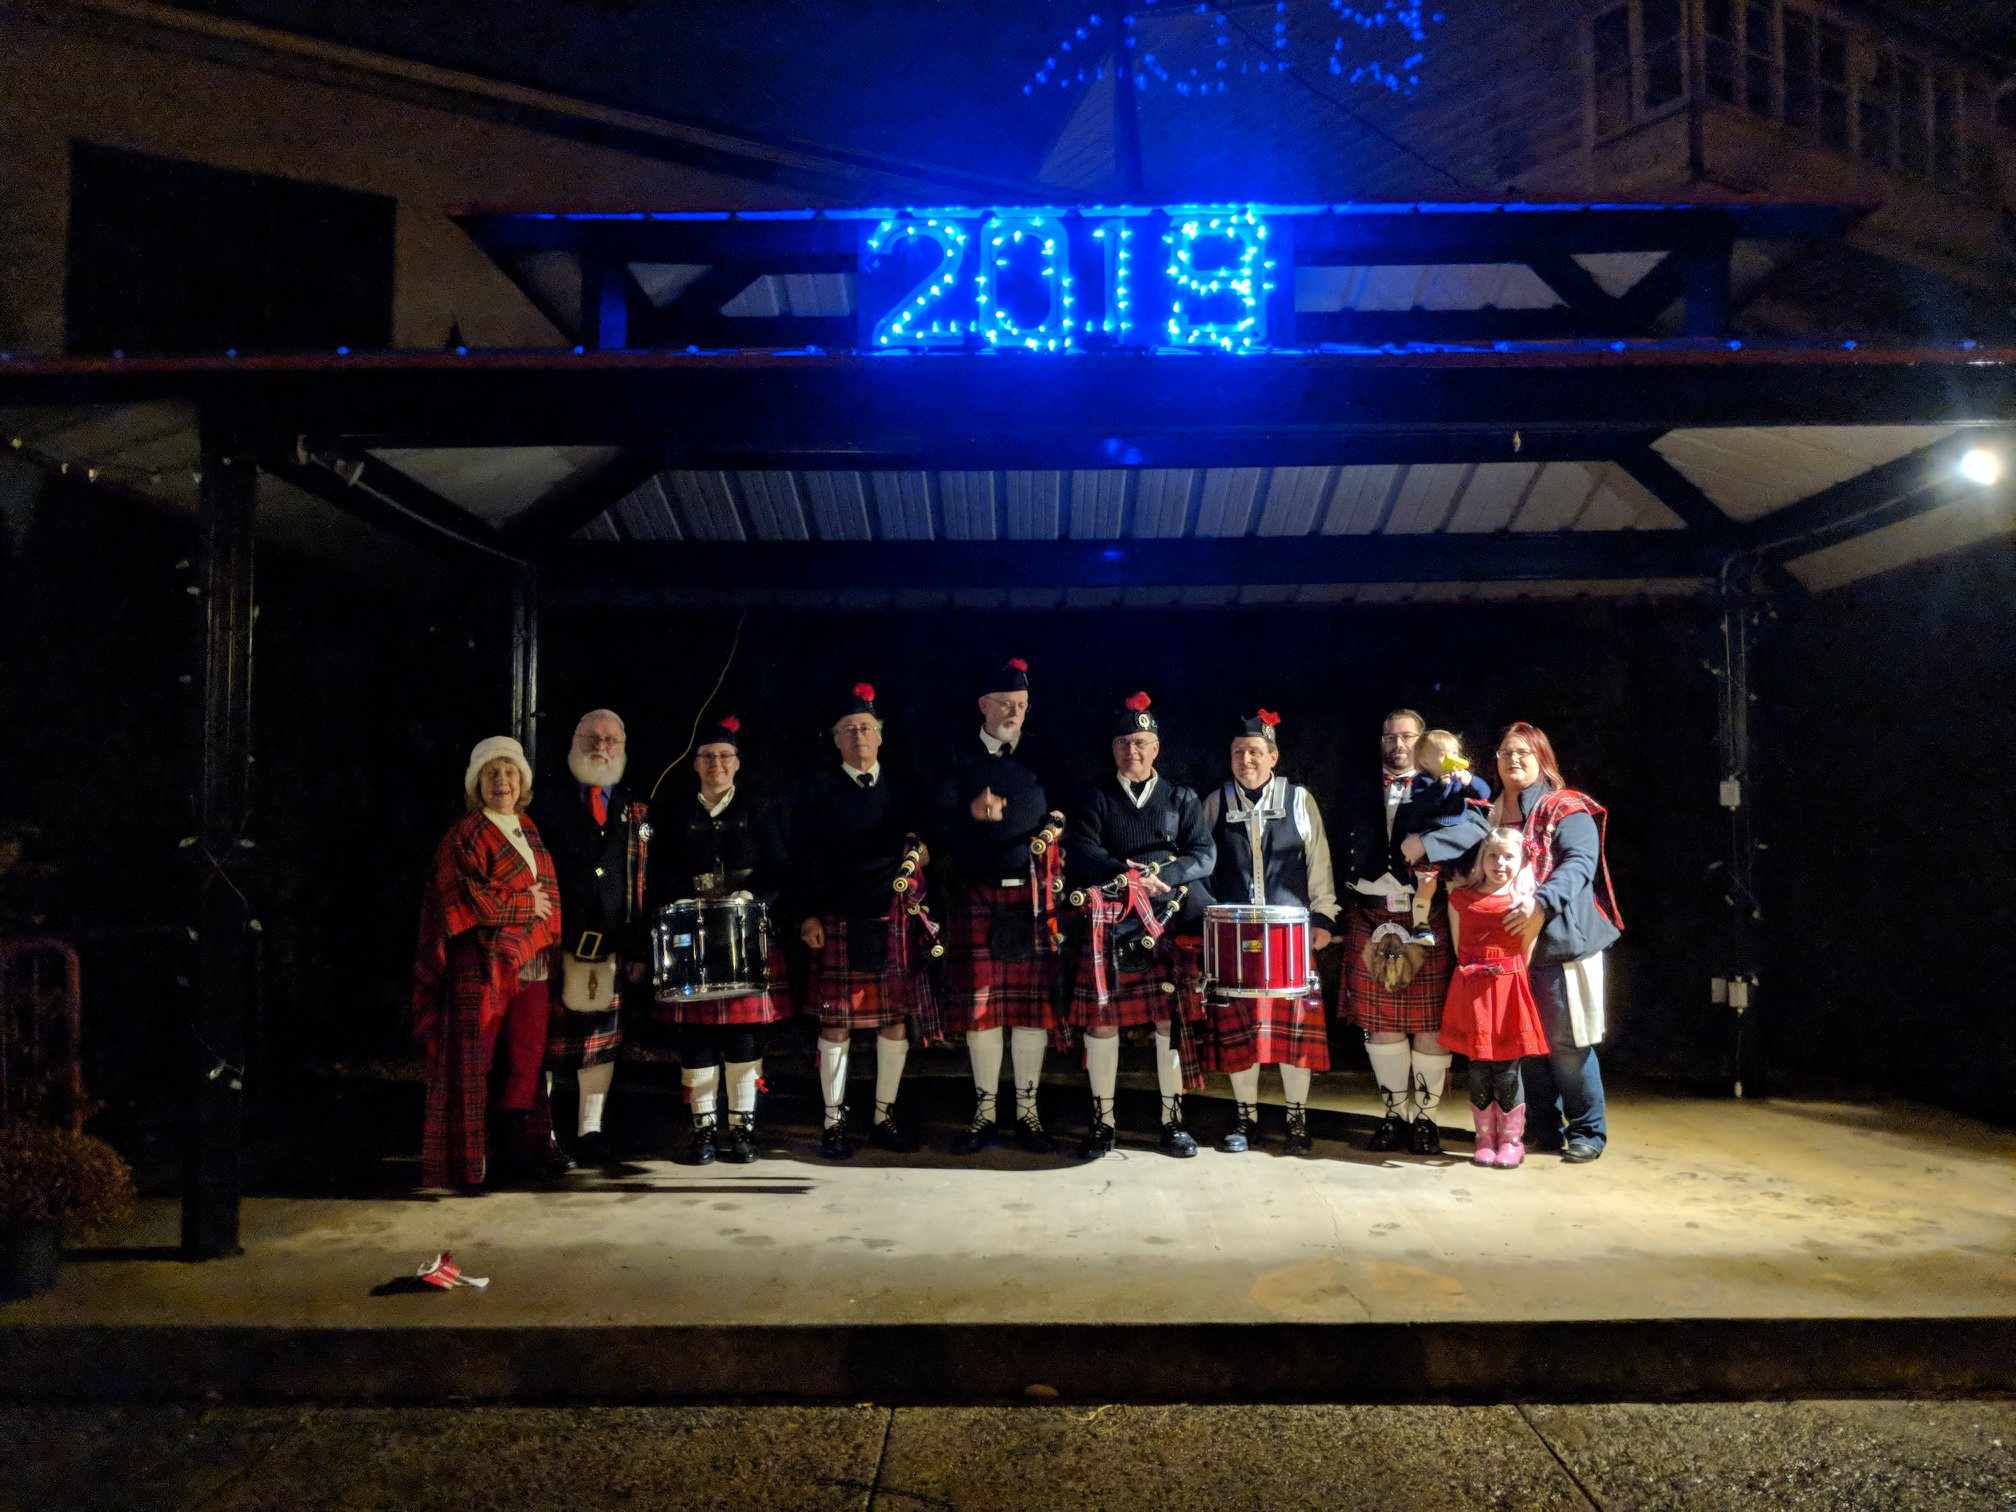 BARC Proudly Presents the 19th Annual Scottish First Footing